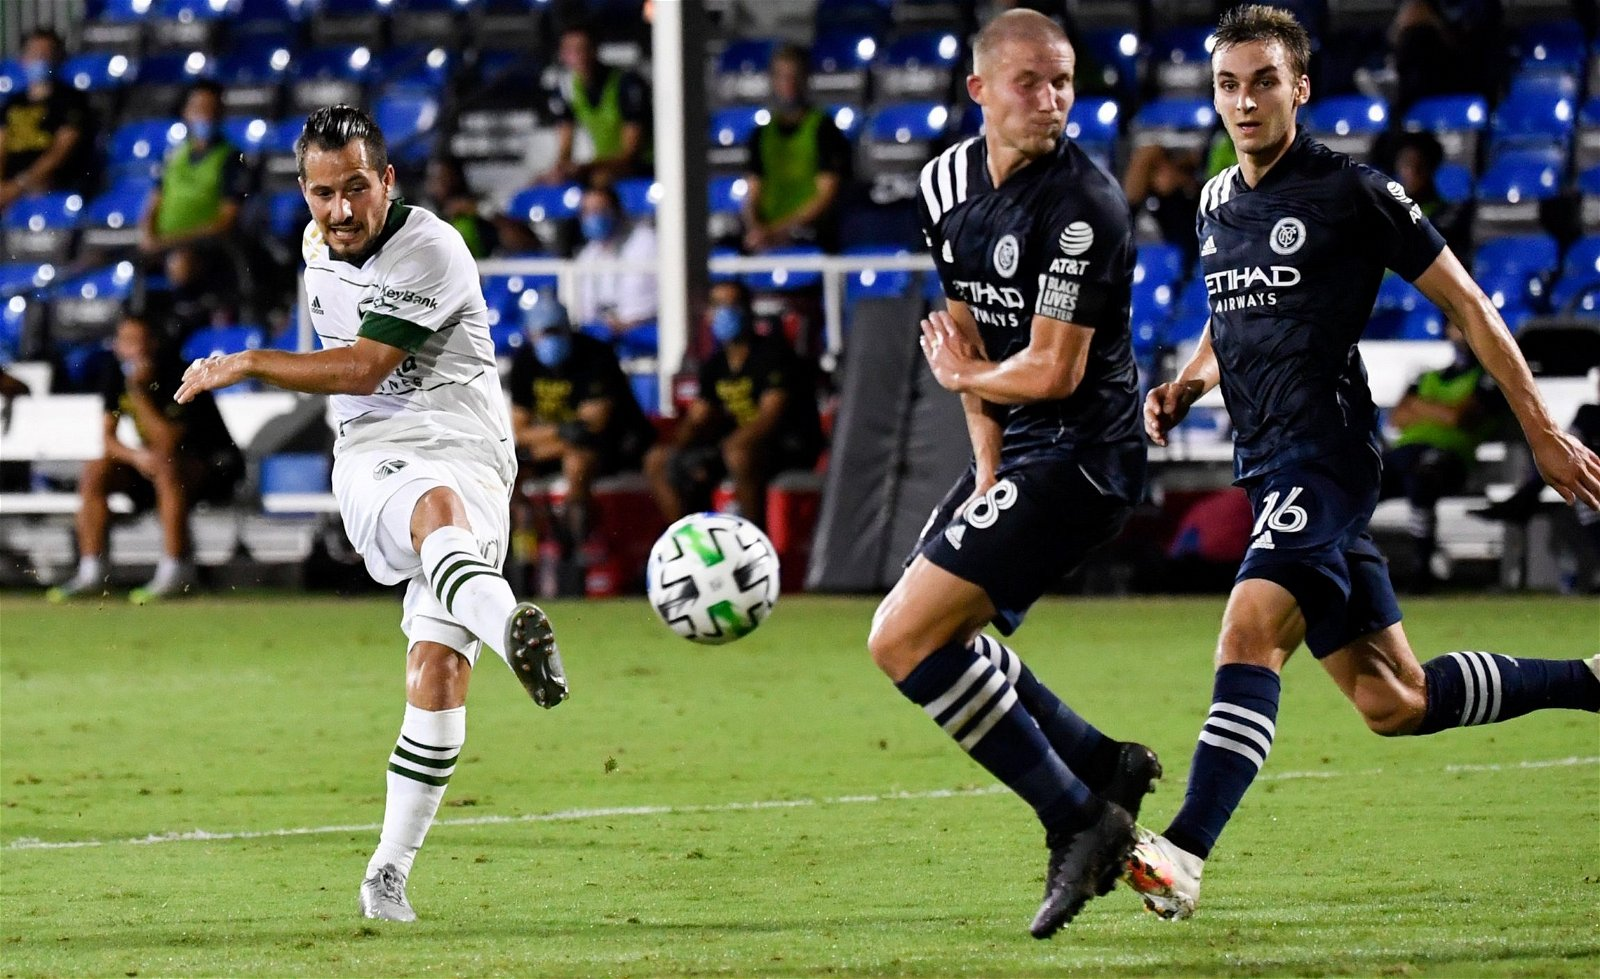 portland timbers midfielder sebastian blanco shoots vs new york mls e1602425129233 - Only played 201 minutes: Alan Irvine flop now a MVP trophy winner after West Brom exit - opinion